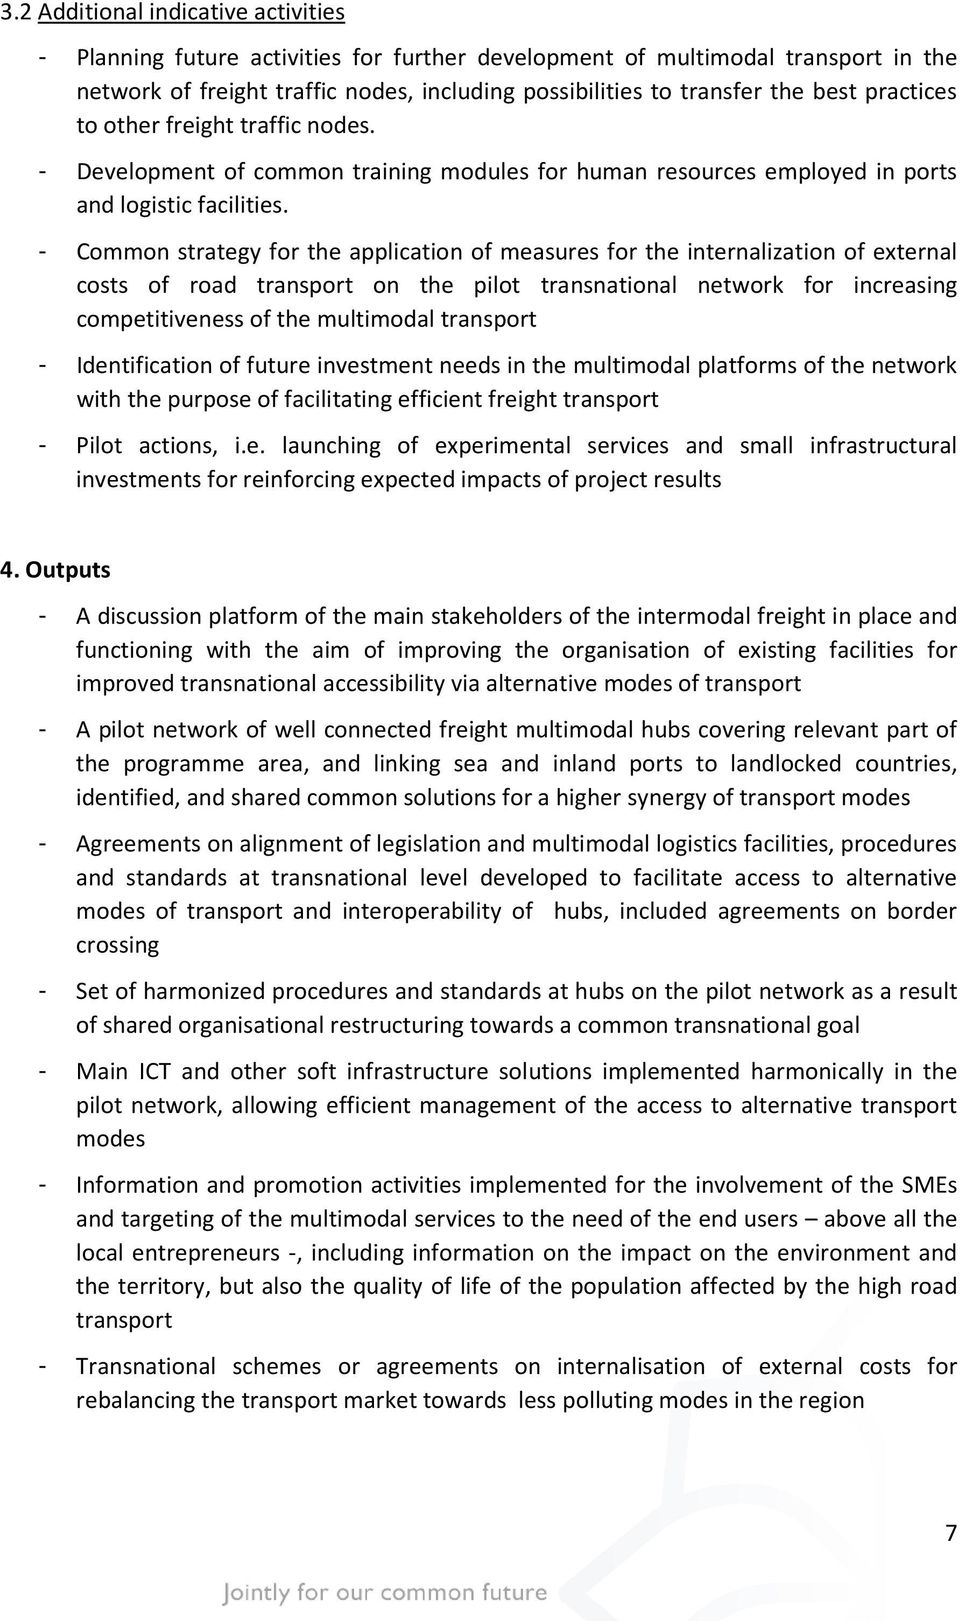 - Common strategy for the application of measures for the internalization of external costs of road transport on the pilot transnational network for increasing competitiveness of the multimodal